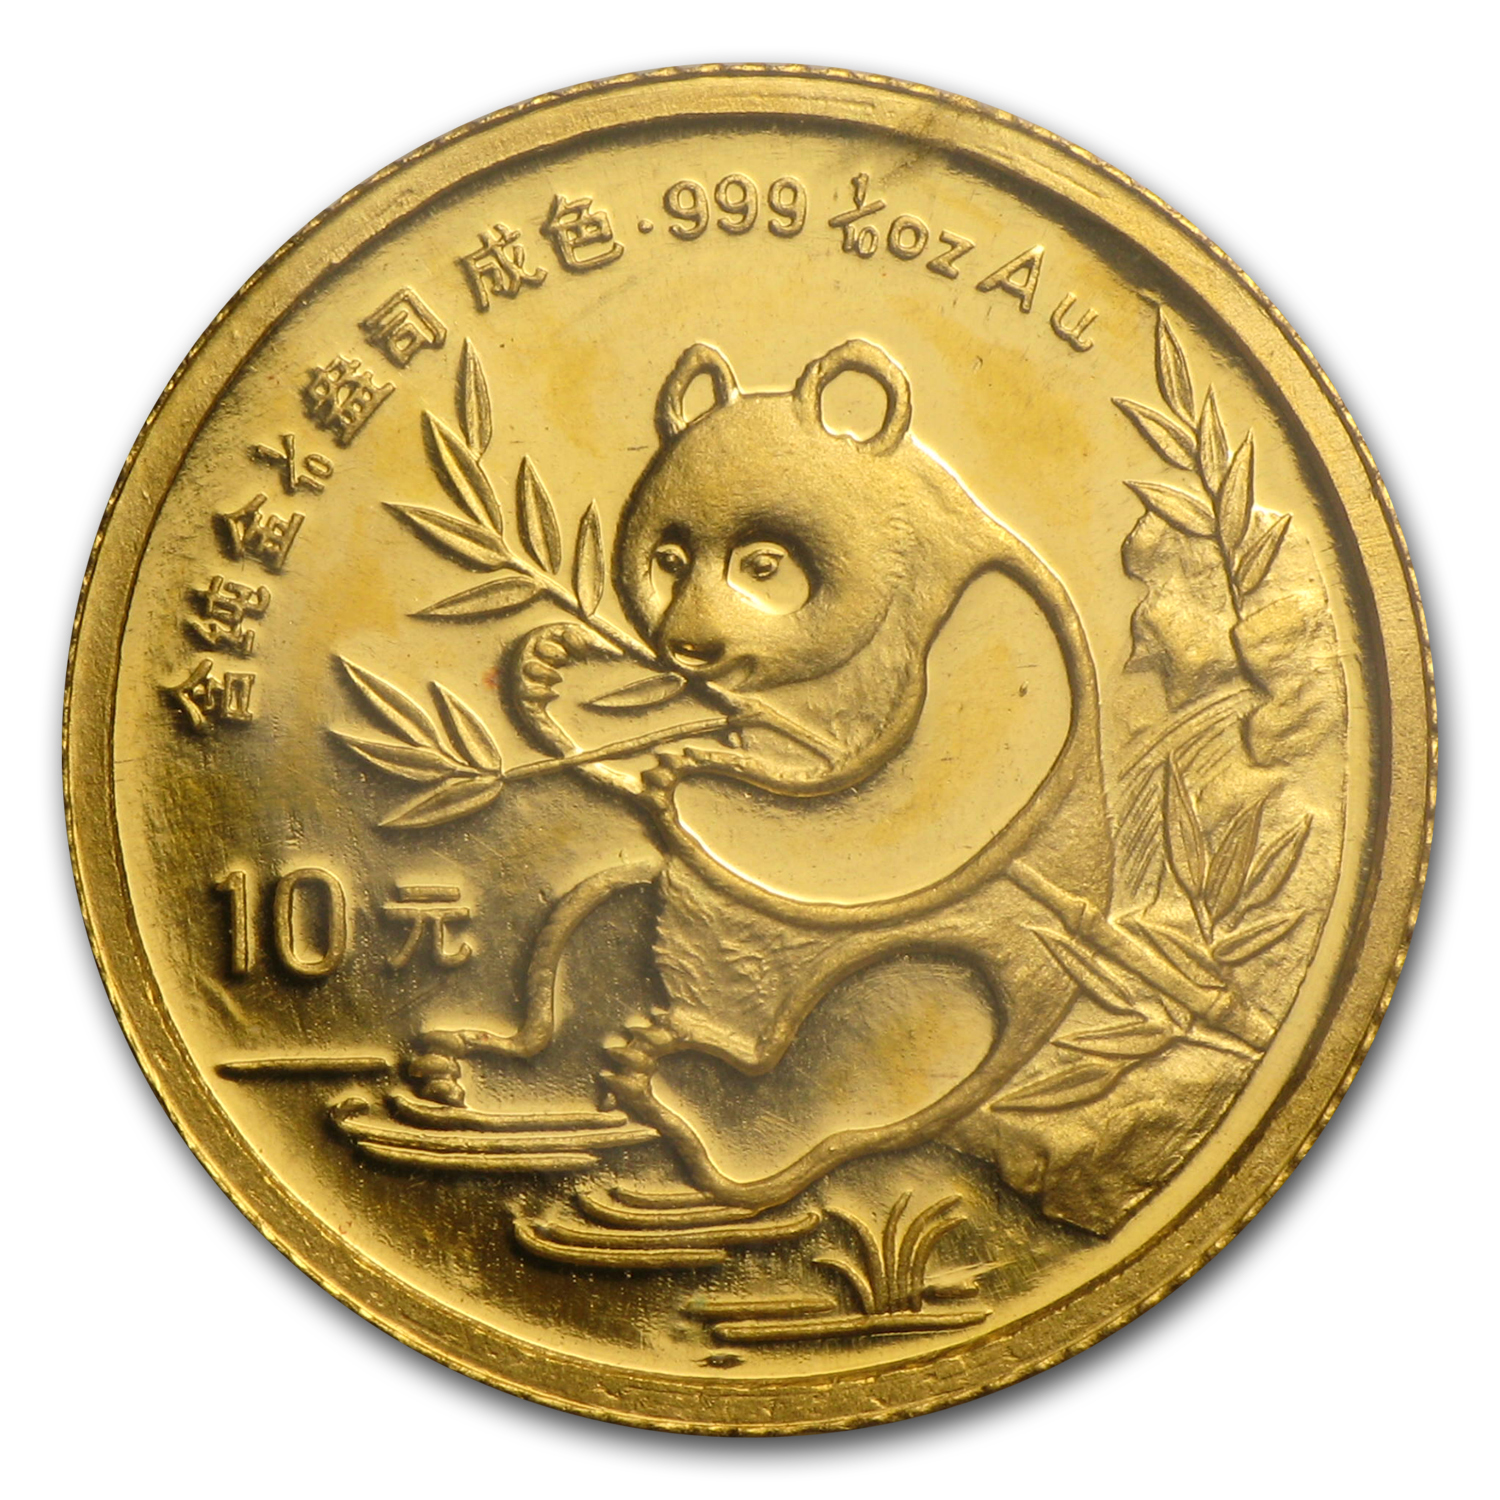 1991 China 1/10 oz Gold Panda Large Date BU (Sealed)